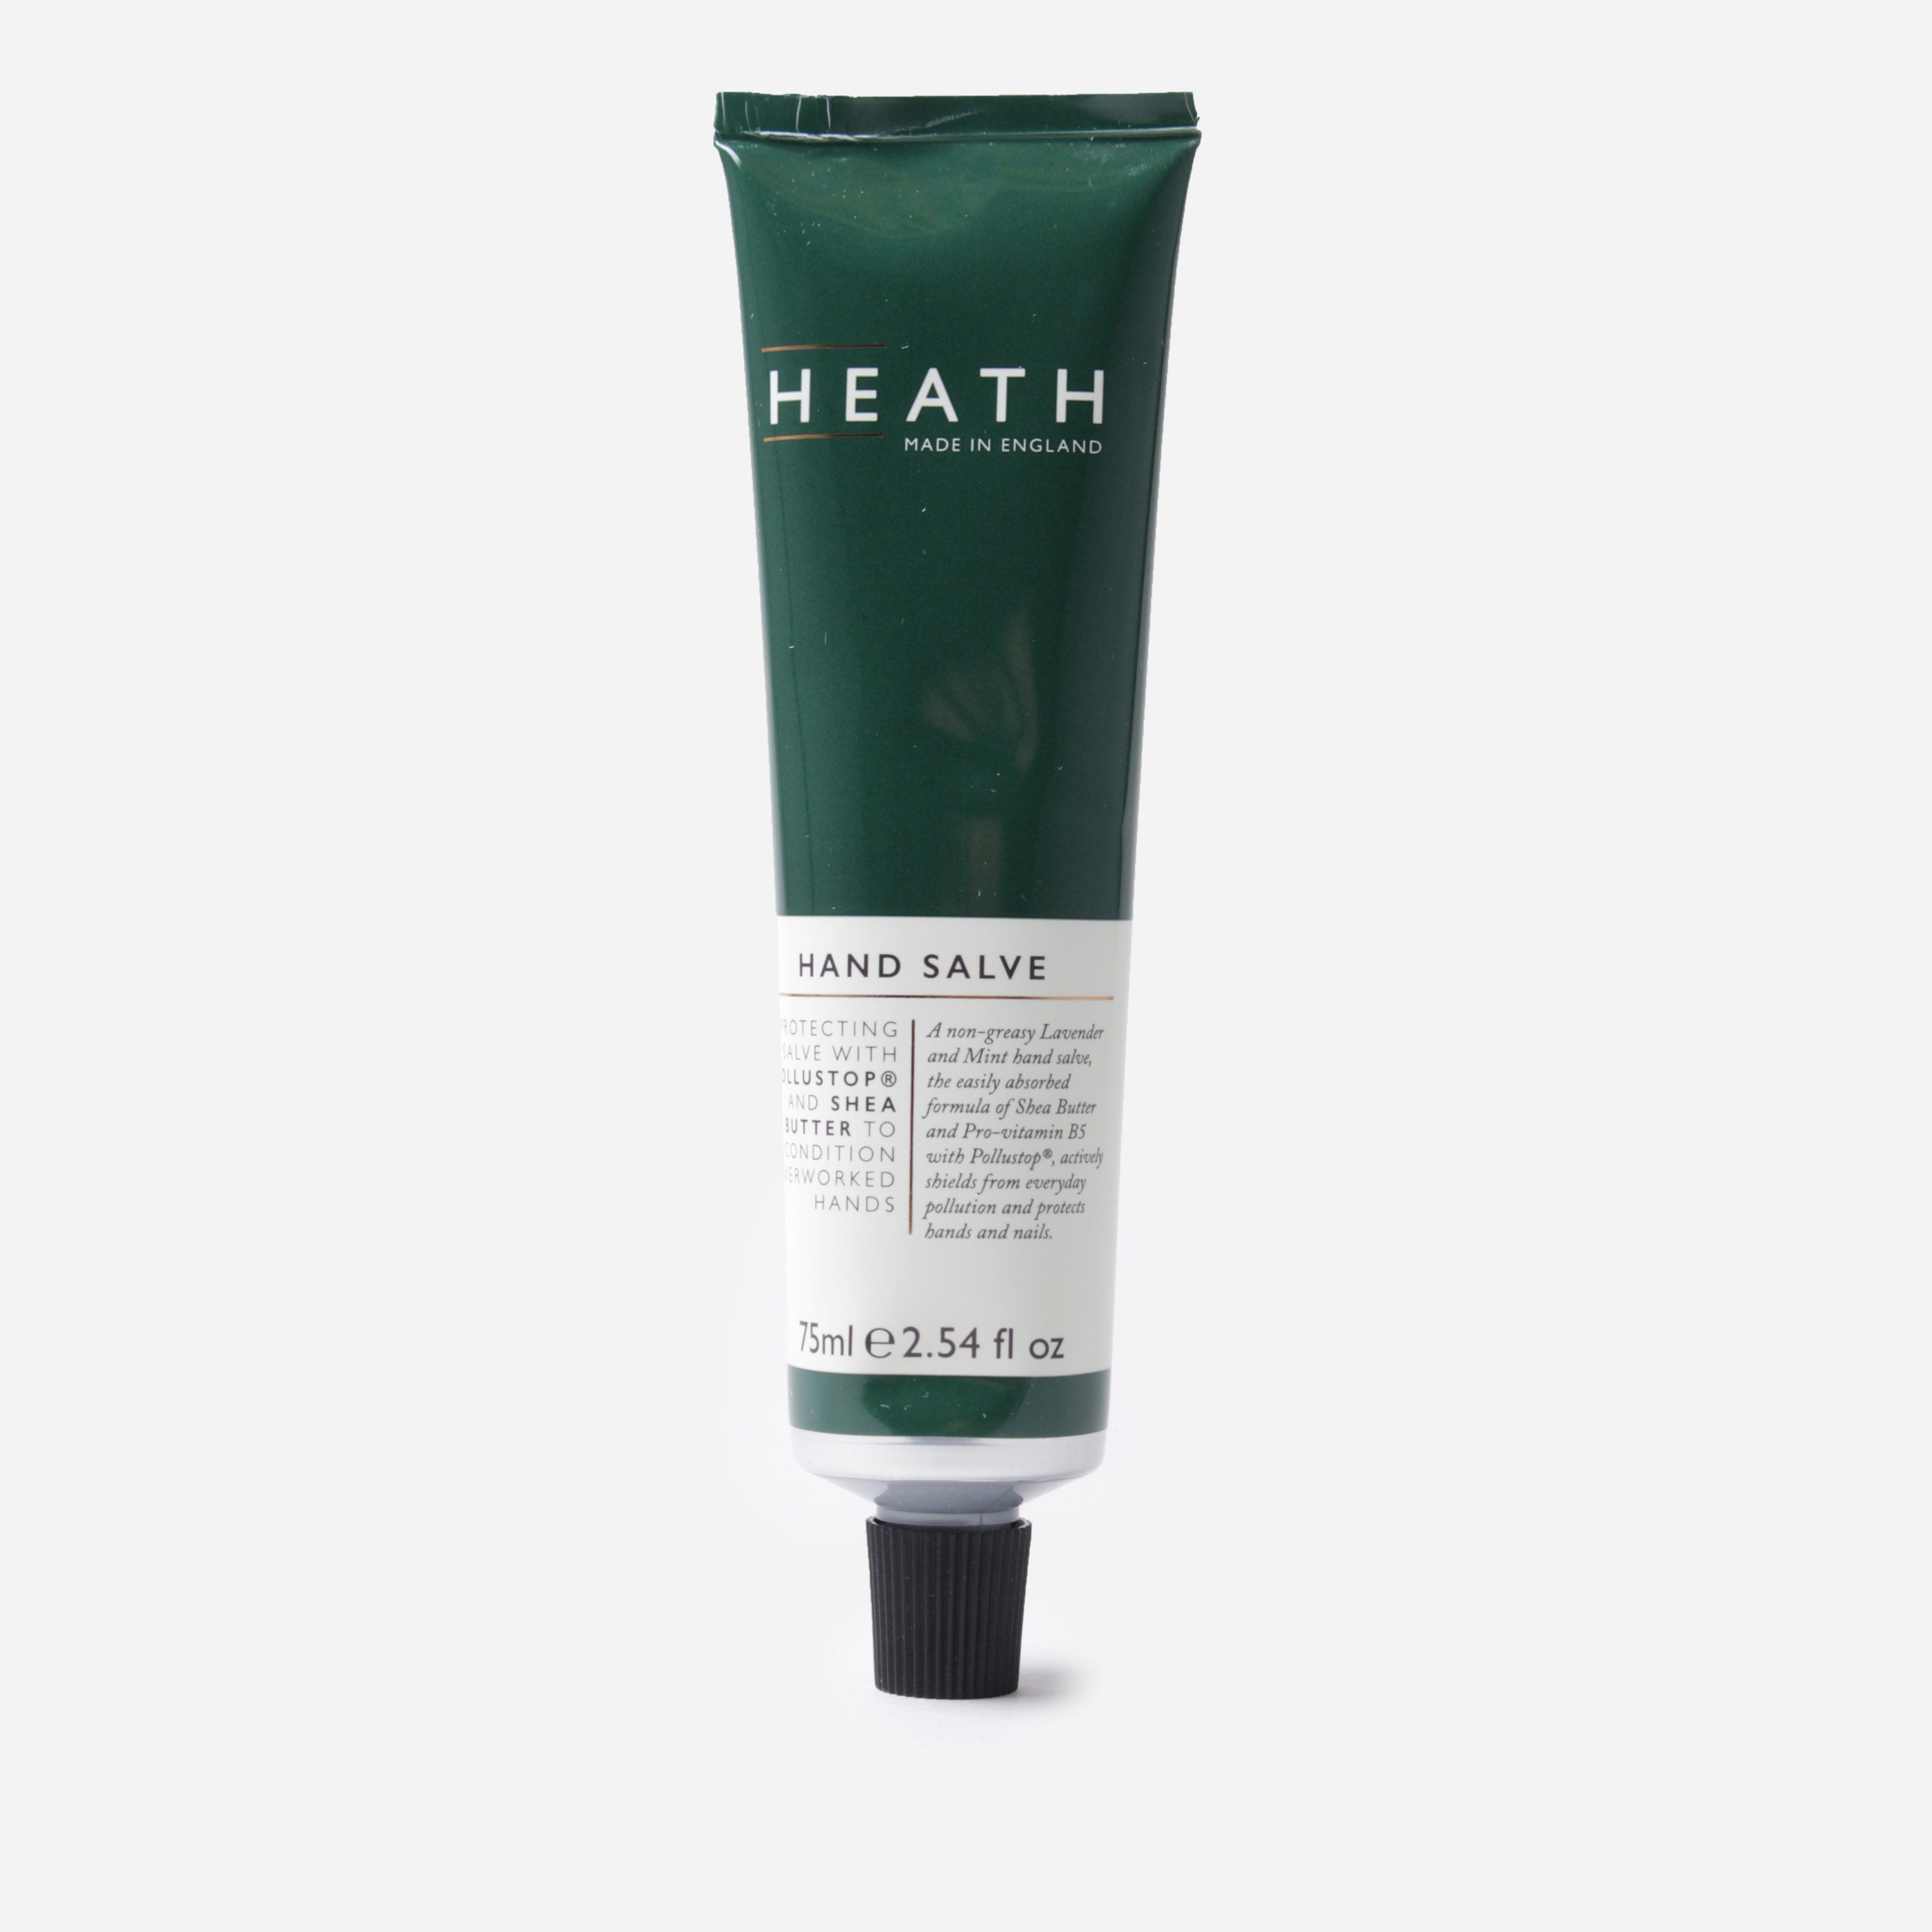 Heath Hand Salve 75ml